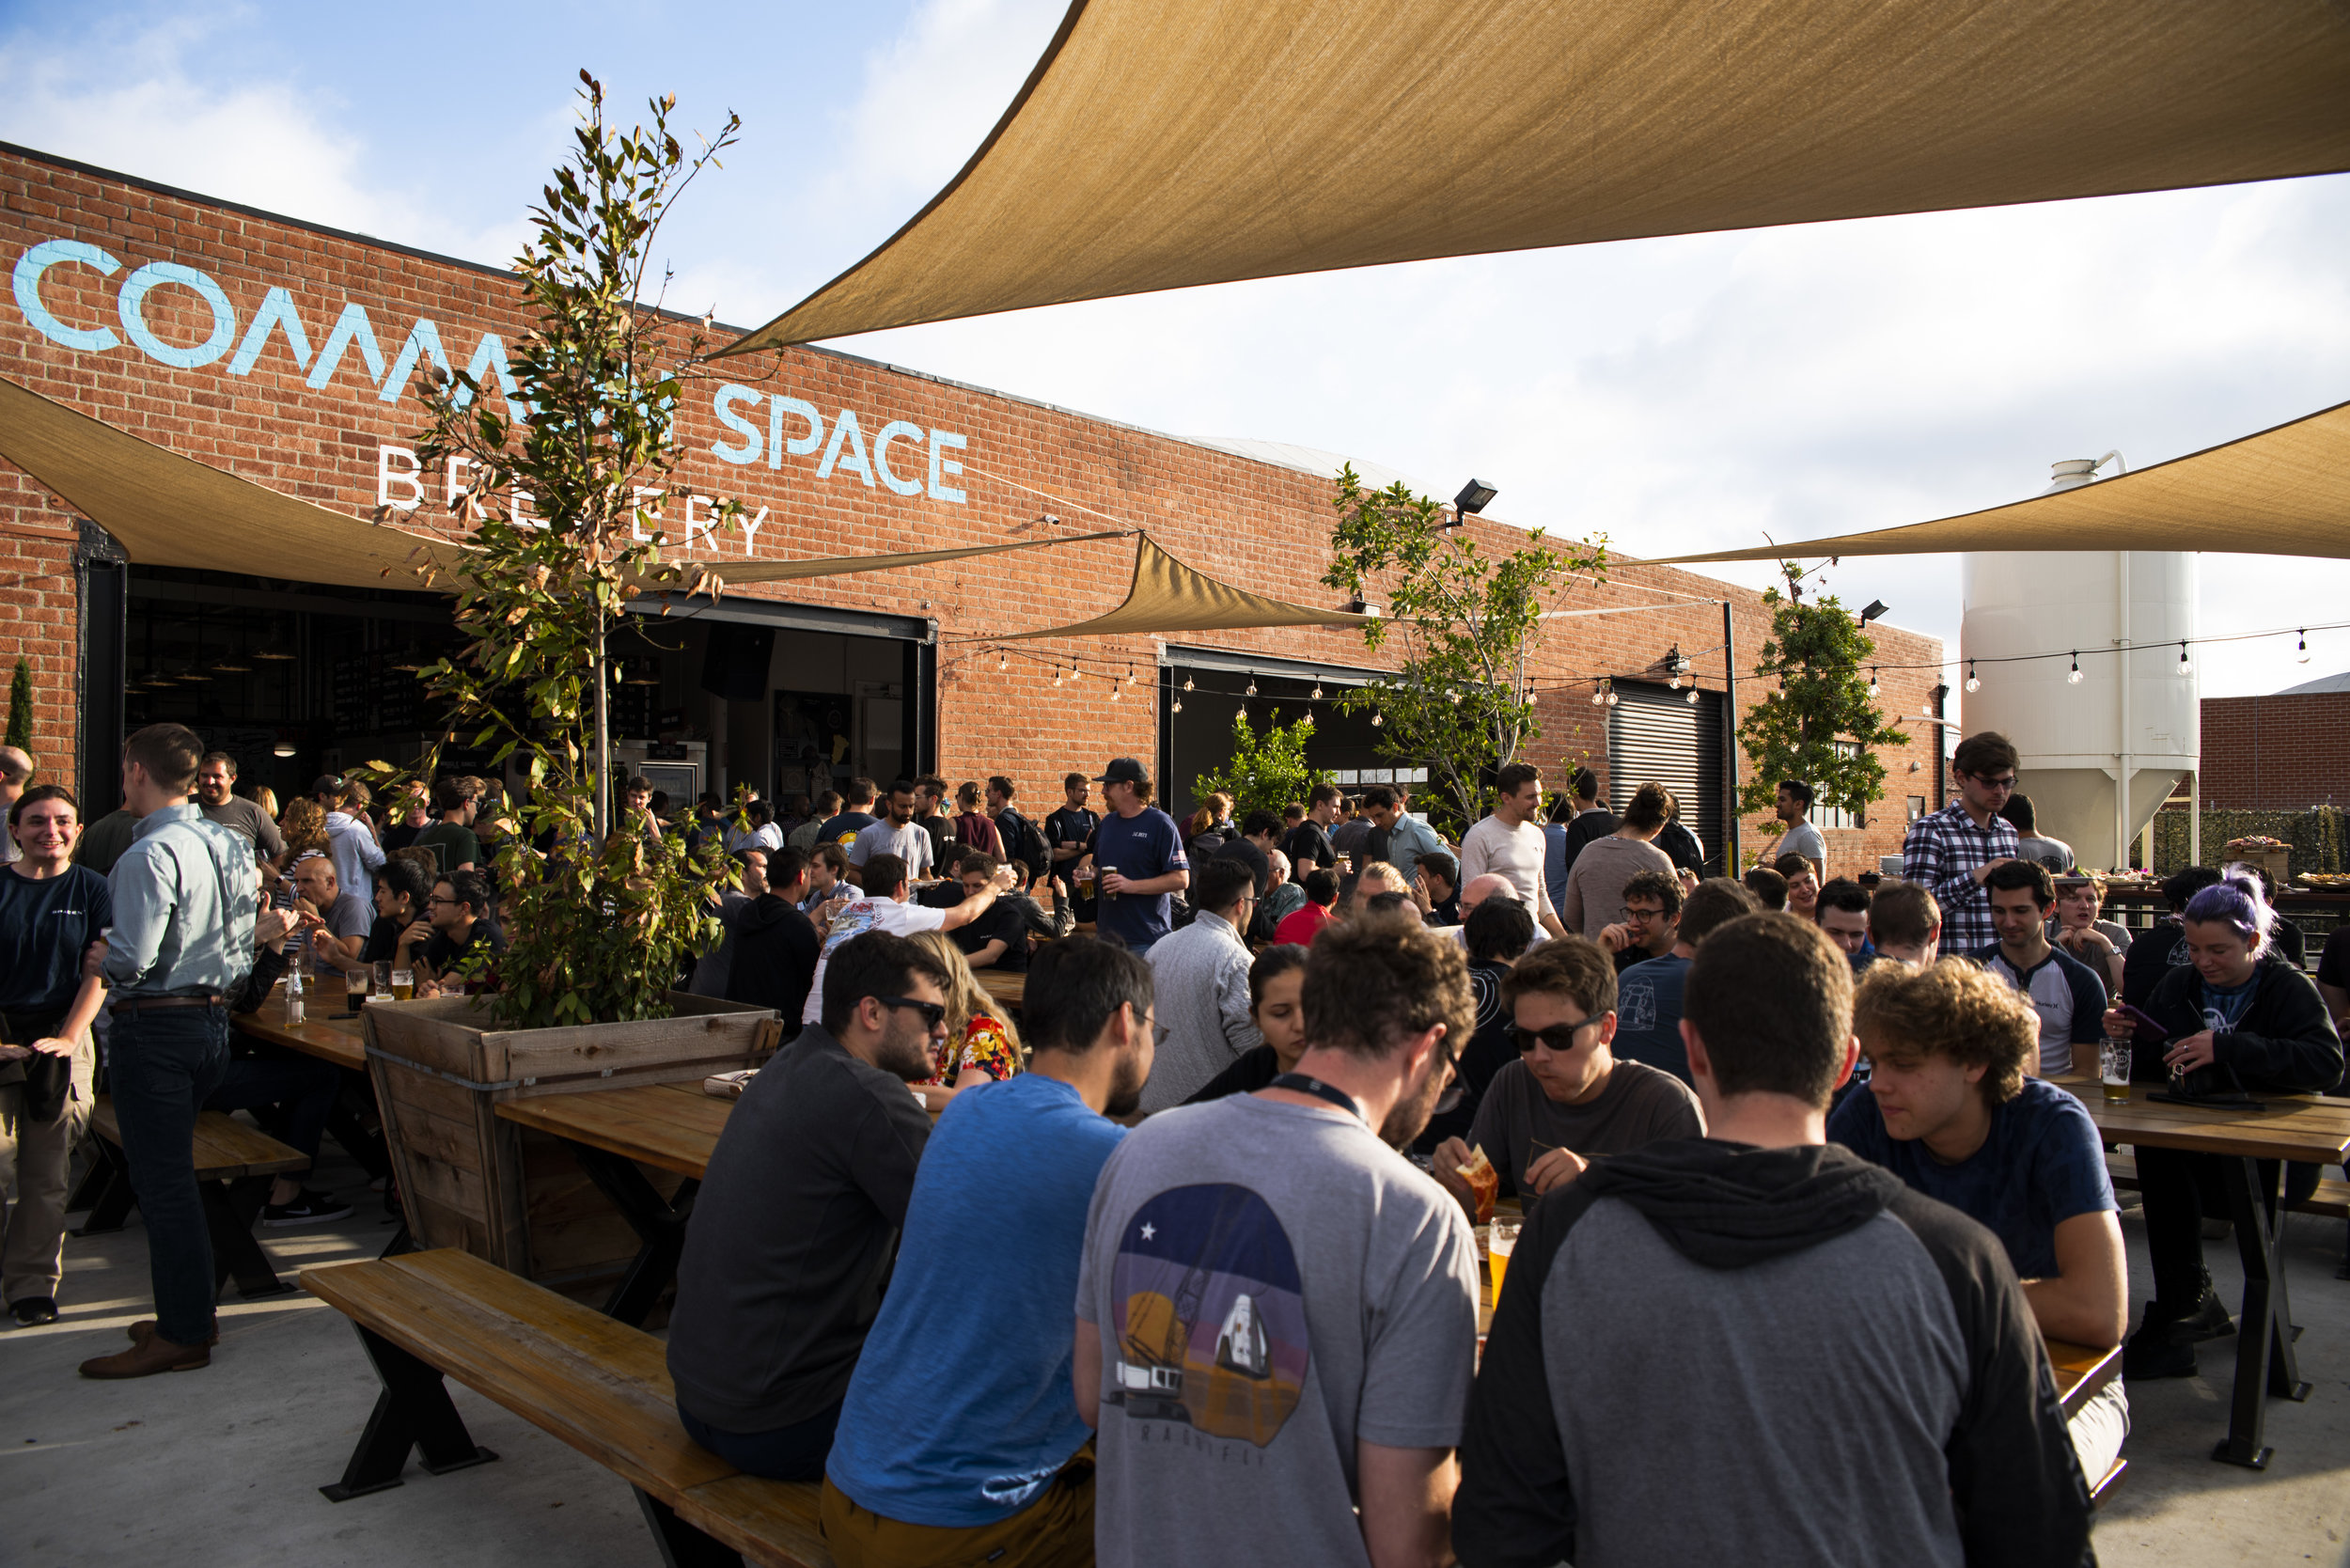 common-space-brewery-los-angeles-south-bay-beer-garden-outdoor-seating-outside-sun